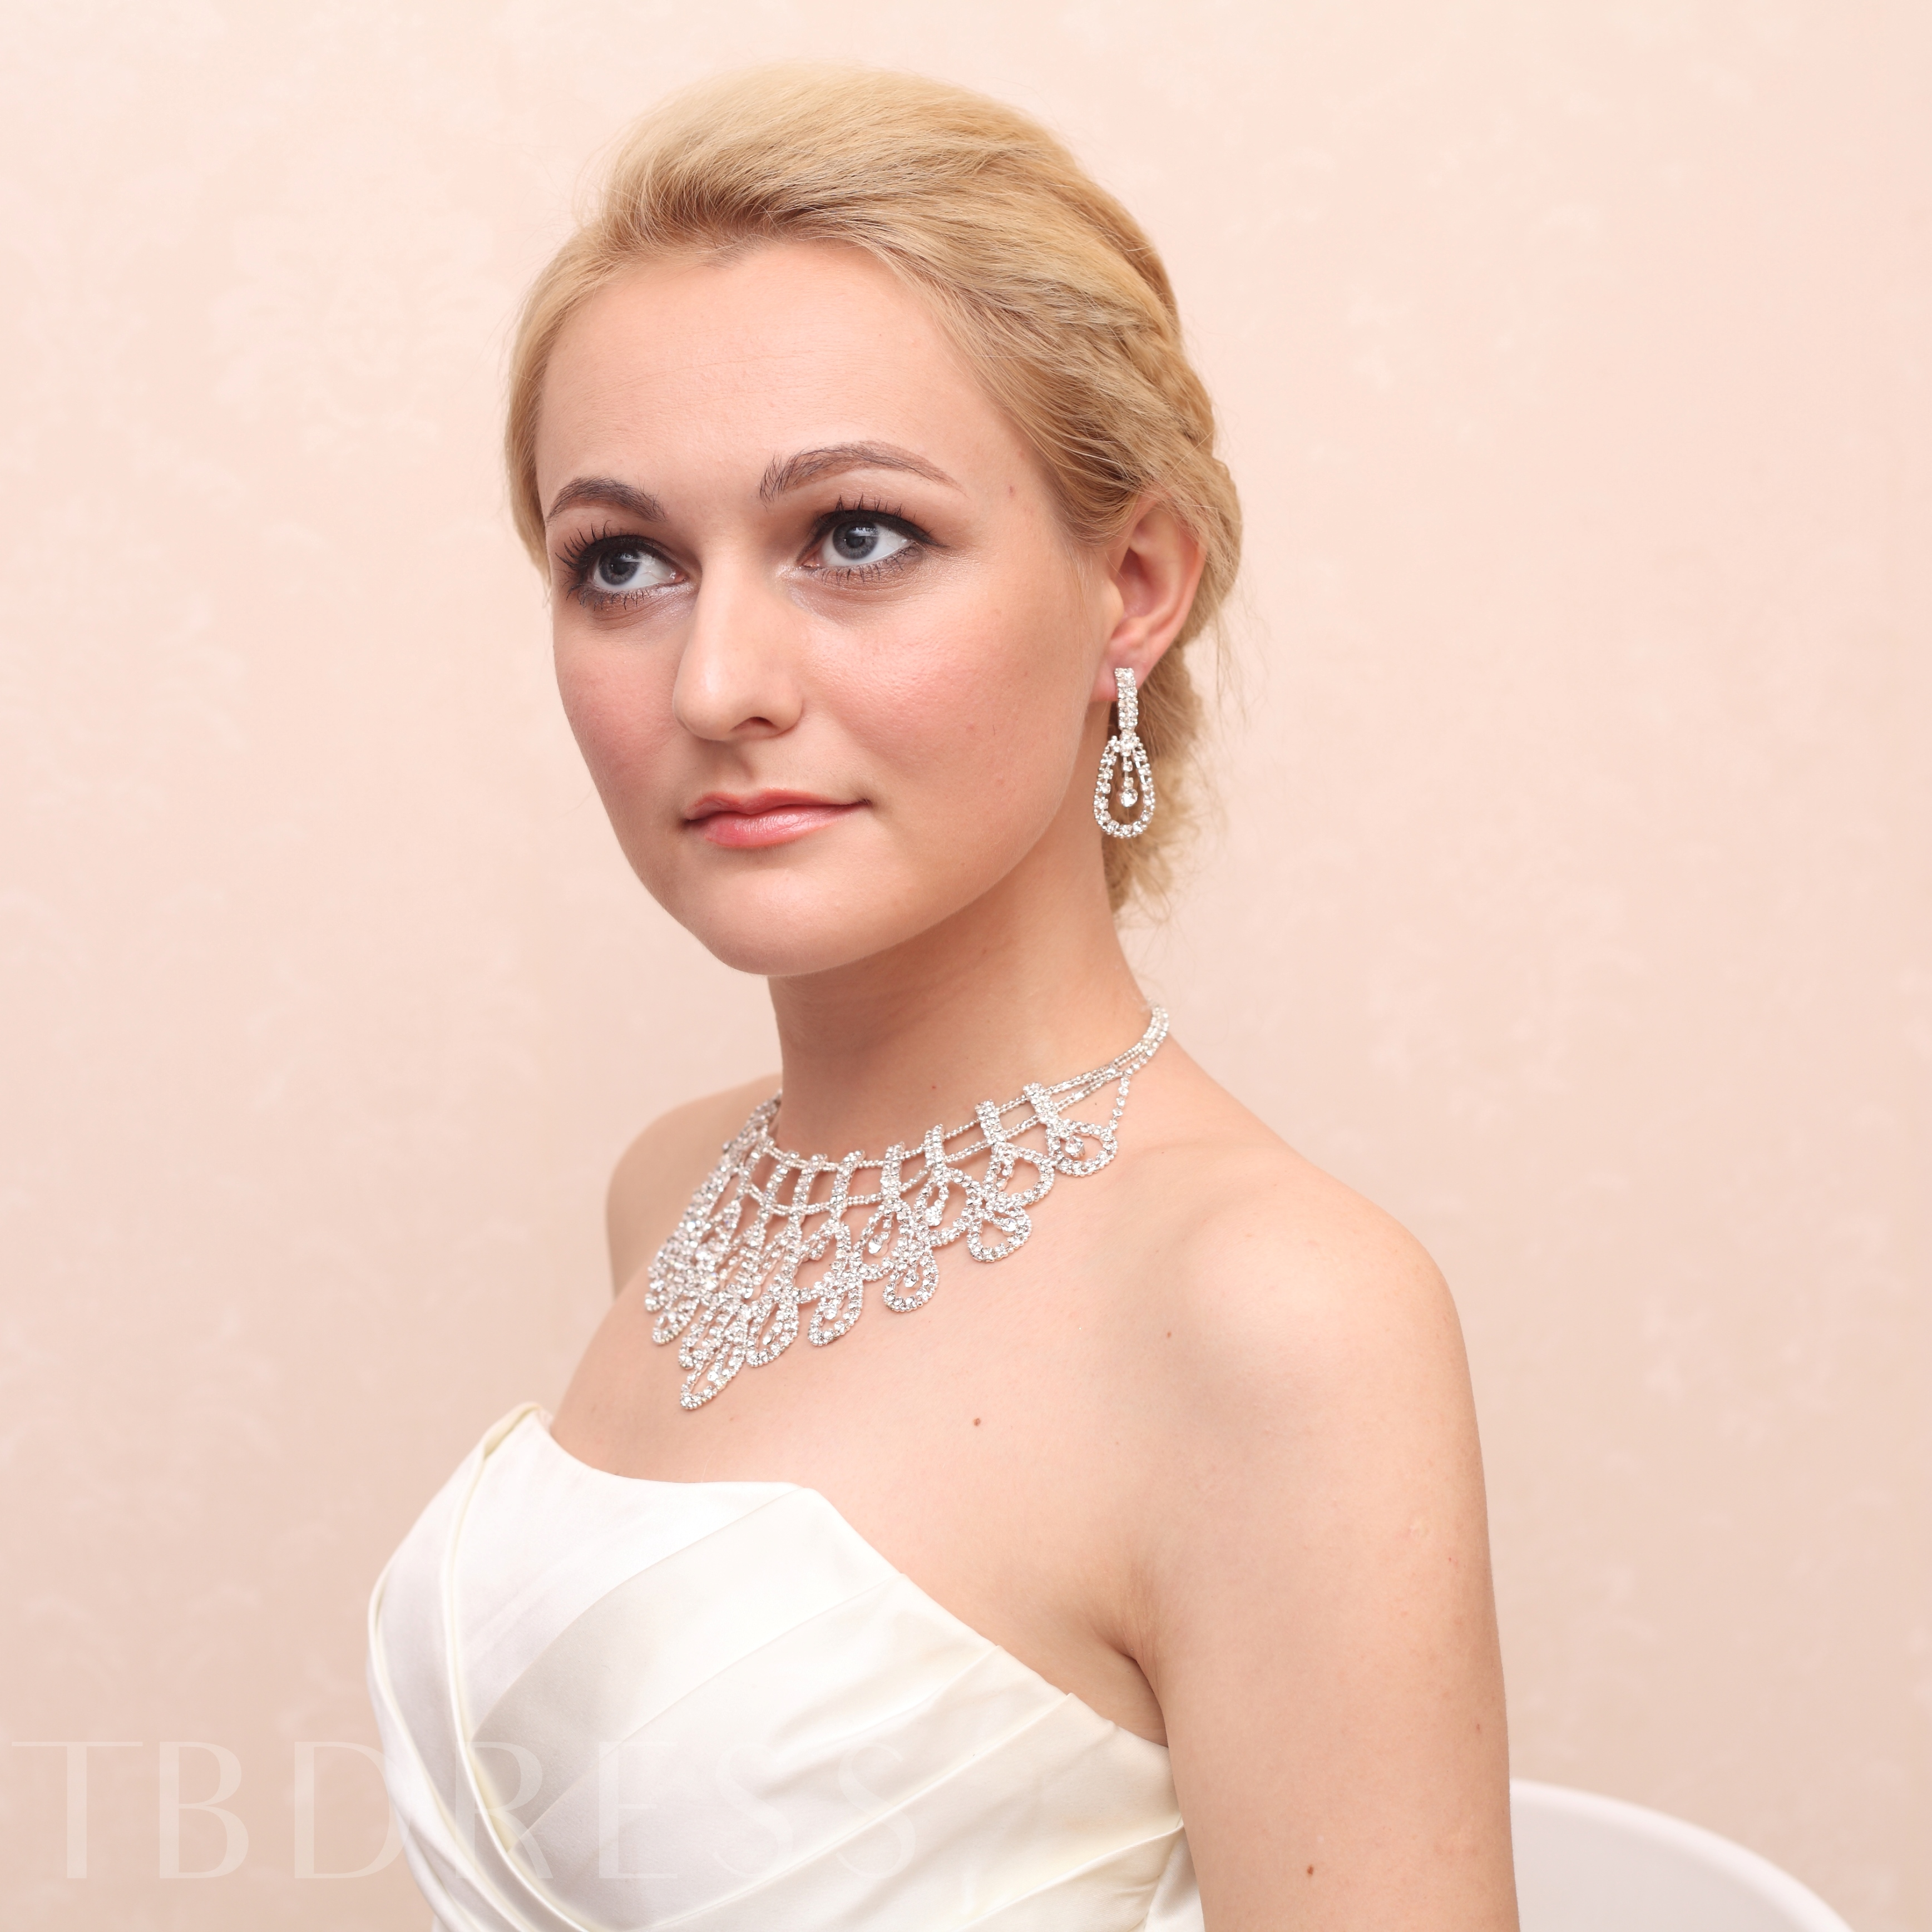 Wedding Bridal Jewelry Set with Shining Rhinestones (Including Necklace and Earrings)